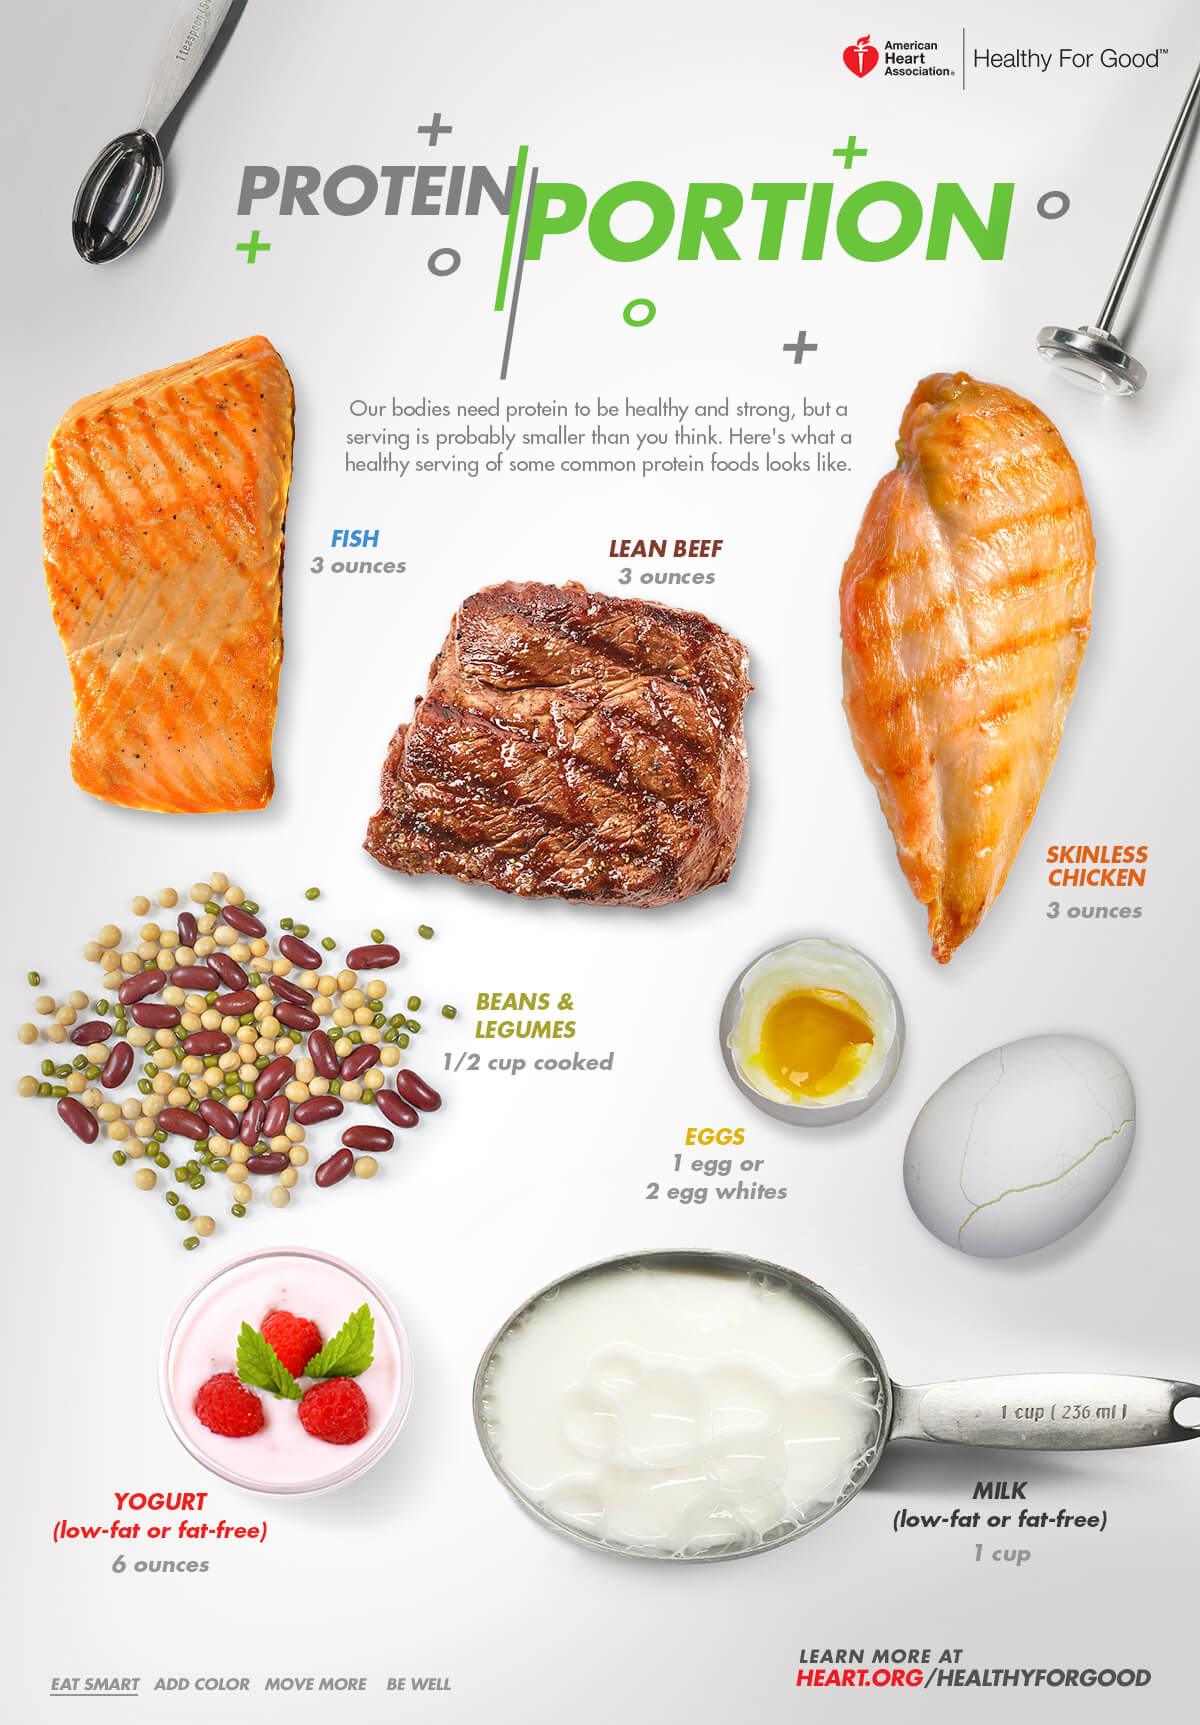 How much protein should I eat in a serving? Infographic | American Heart Association